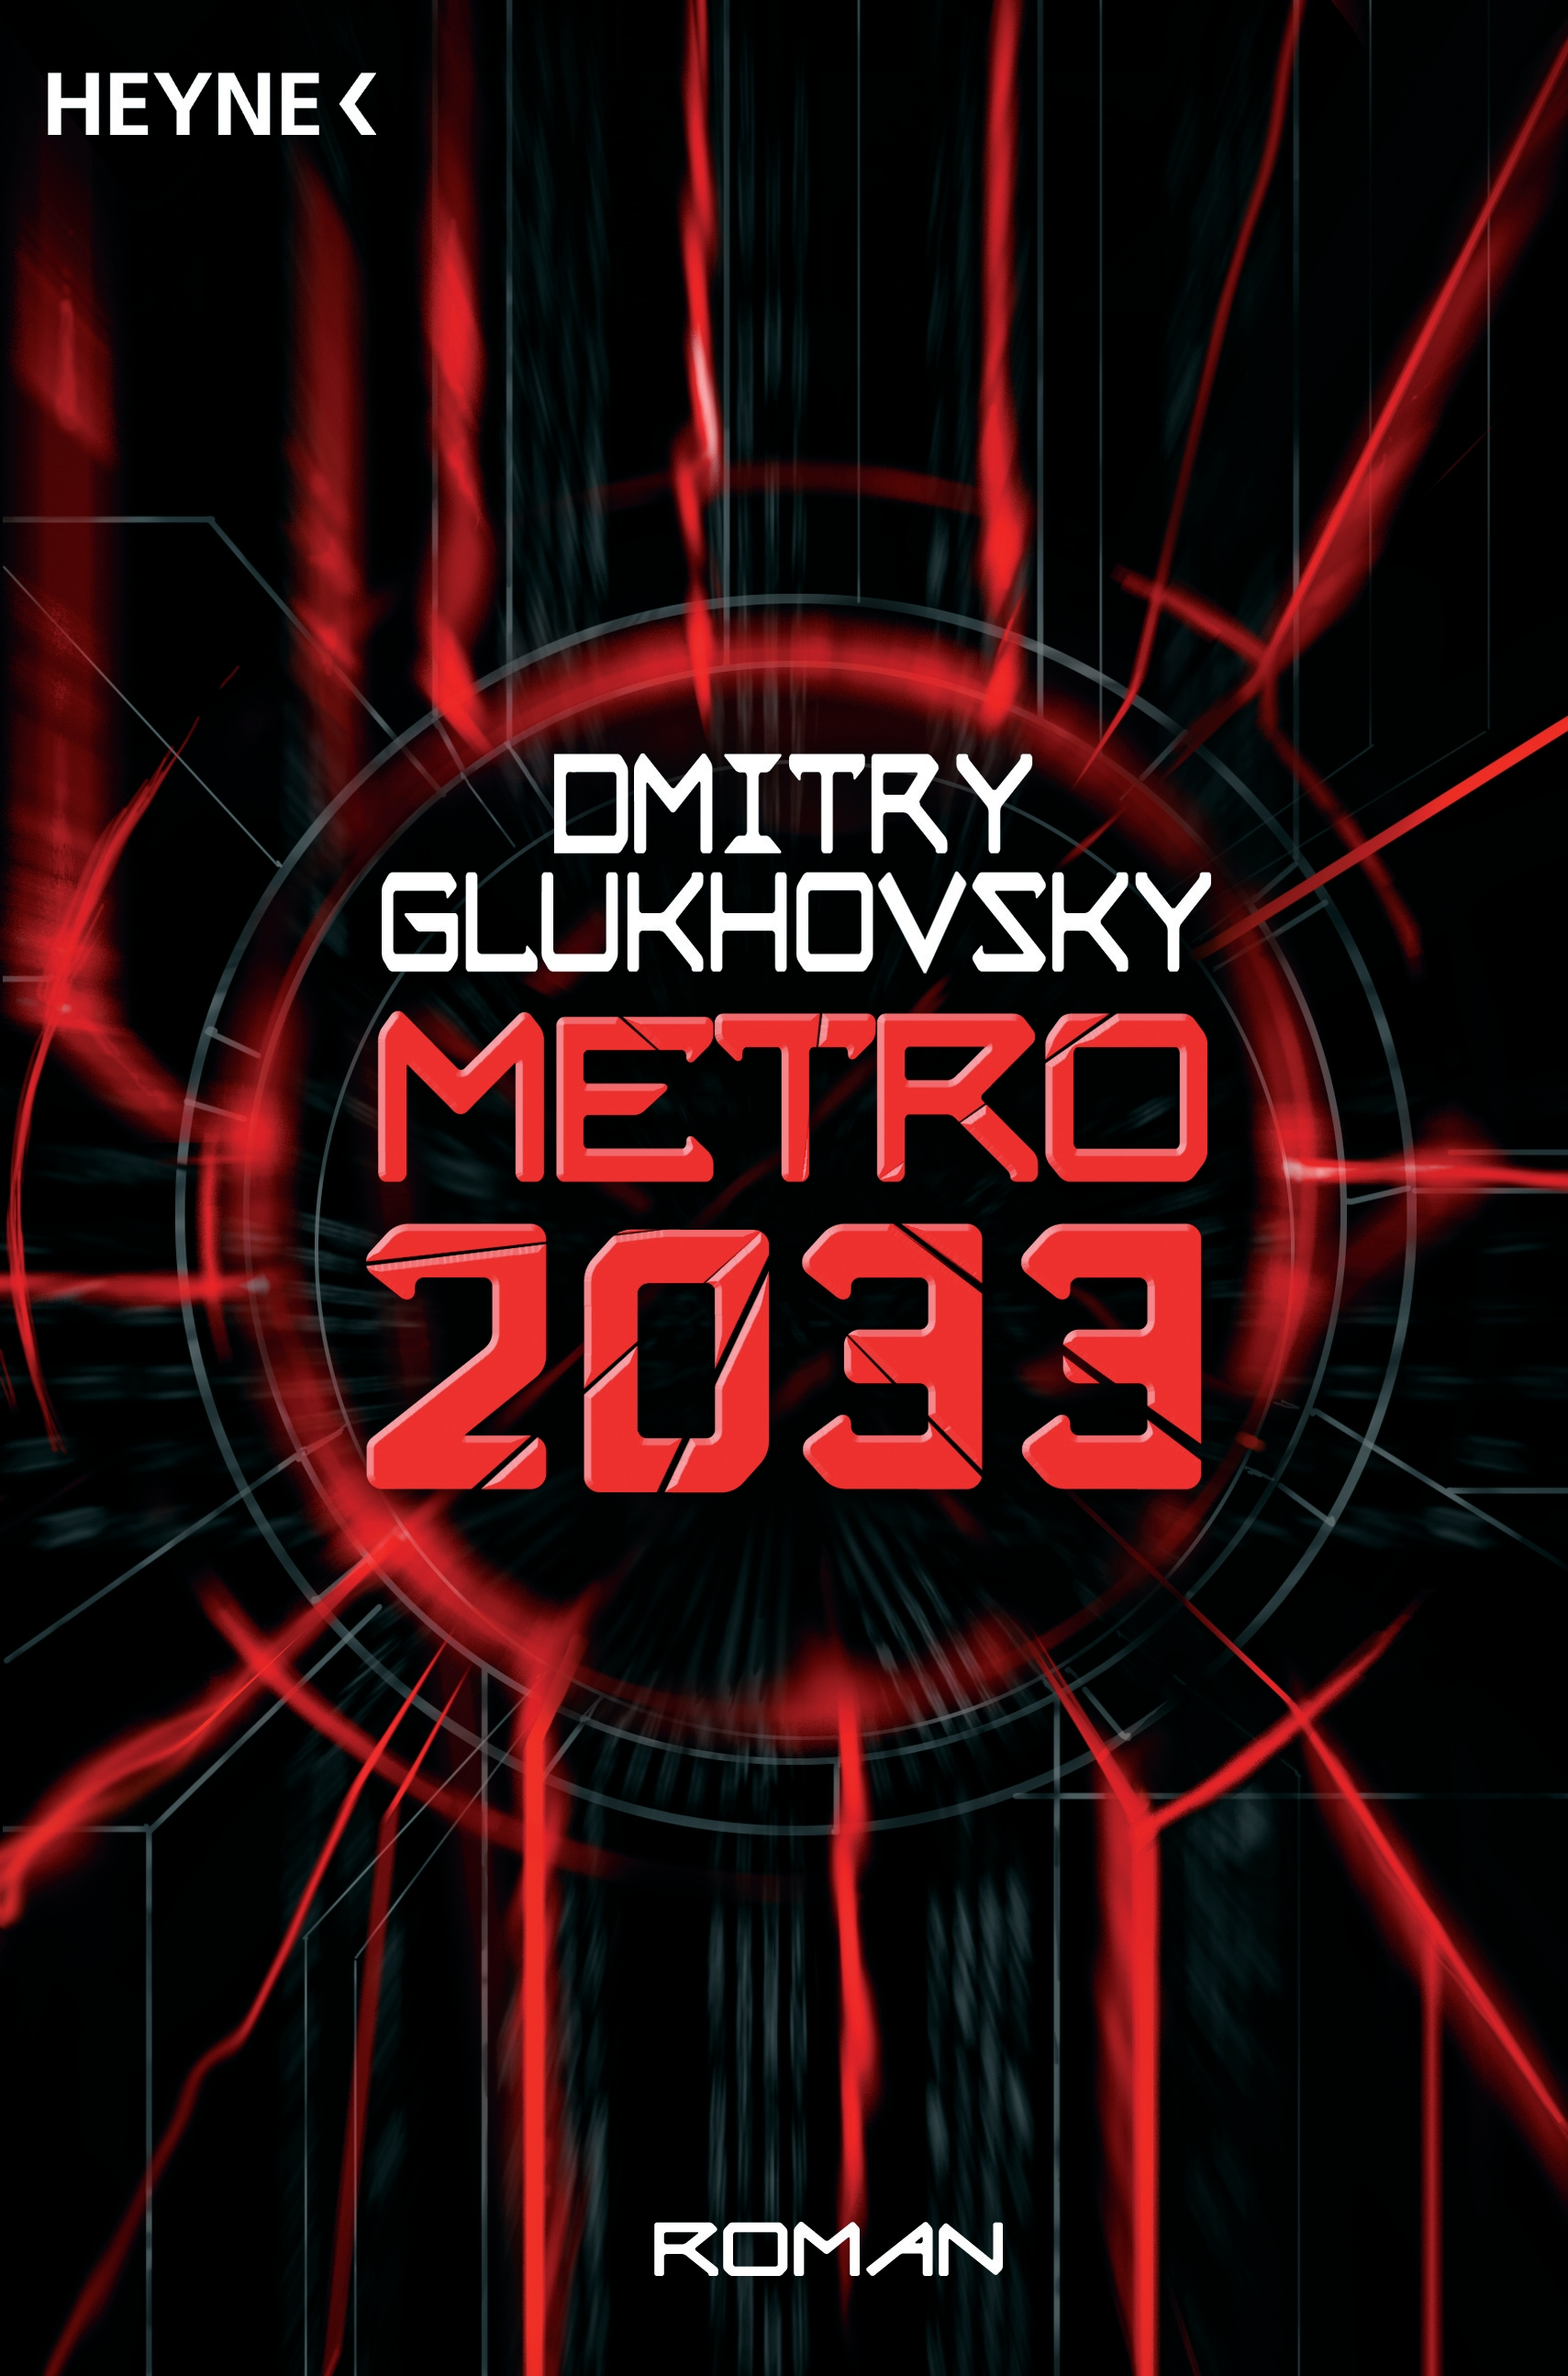 metro 2033 by dmitry glukhovsky essay This review is for the novel metro 2033 written by dmitry glukhovsky the video game based on this book is one of my three favorite video games of all timethe other two being half-life 2 series and the stalker series.